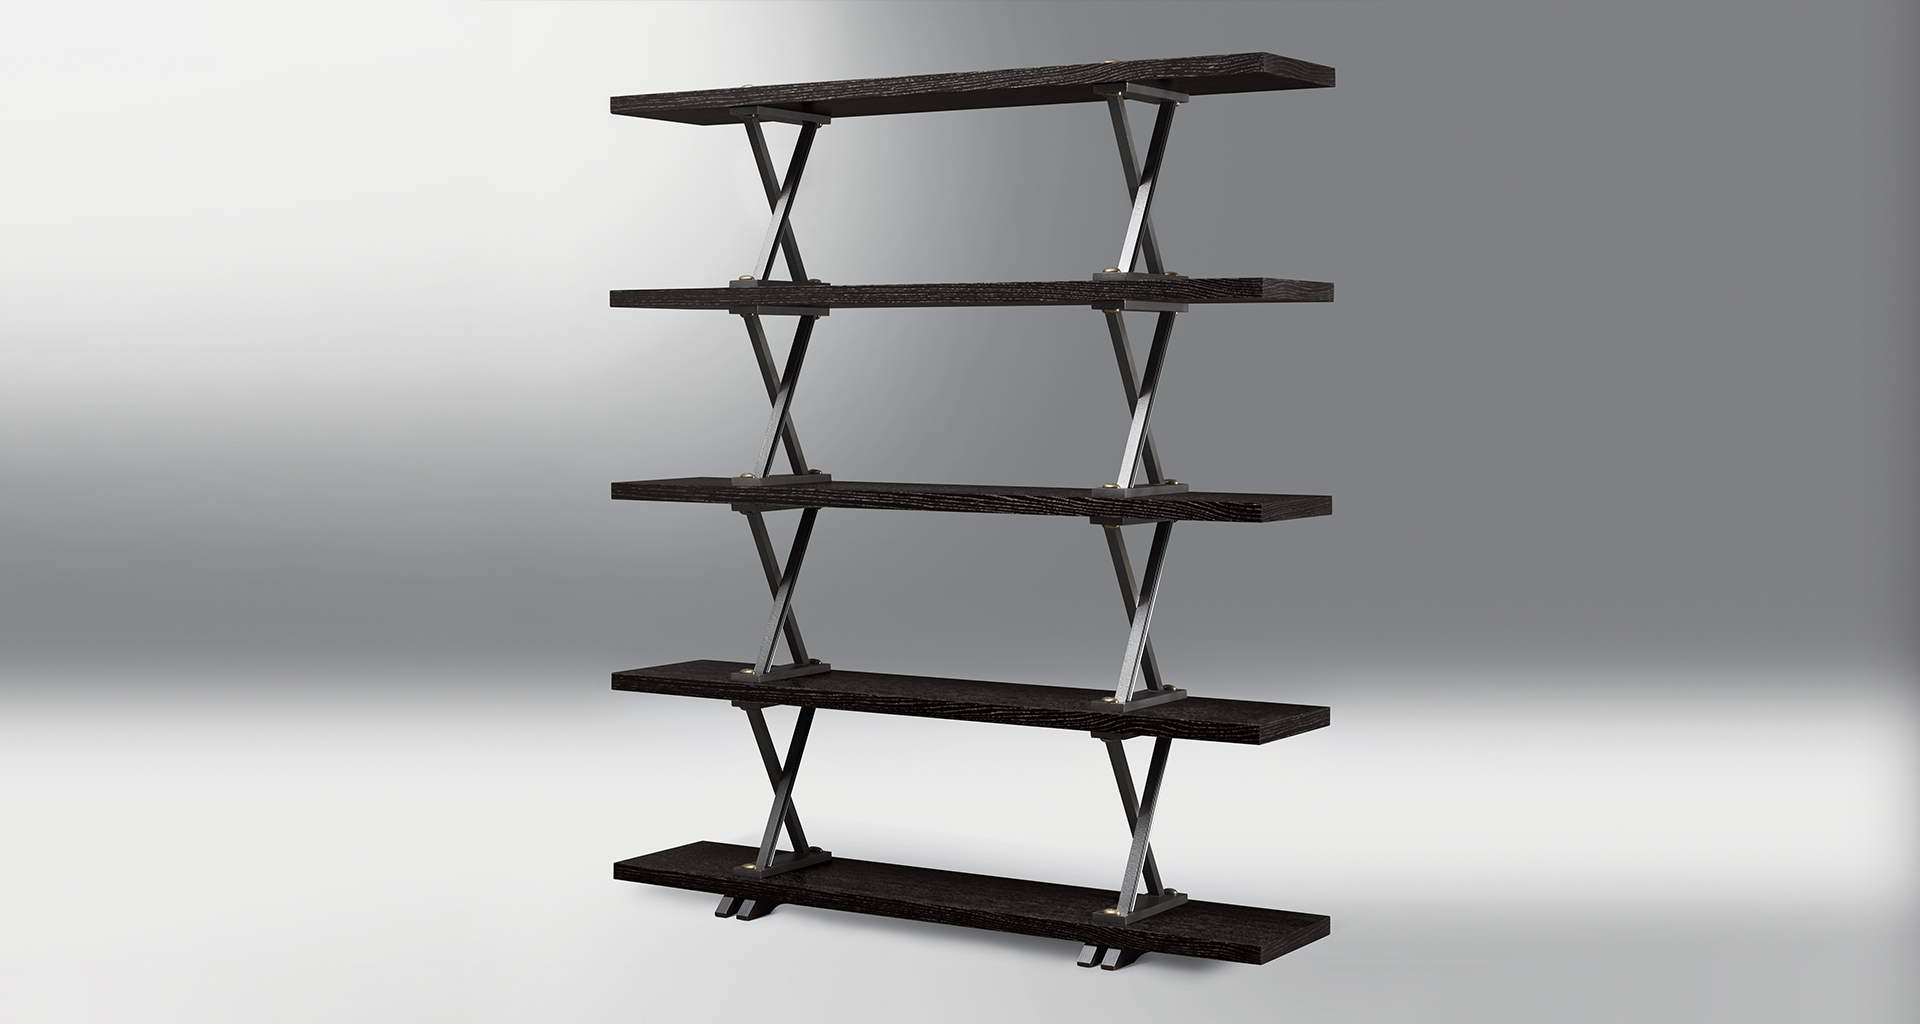 X Libreria is a wooden modular bookcase with bronze supports shaped like and X, from Promemoria's catalogue | Promemoria